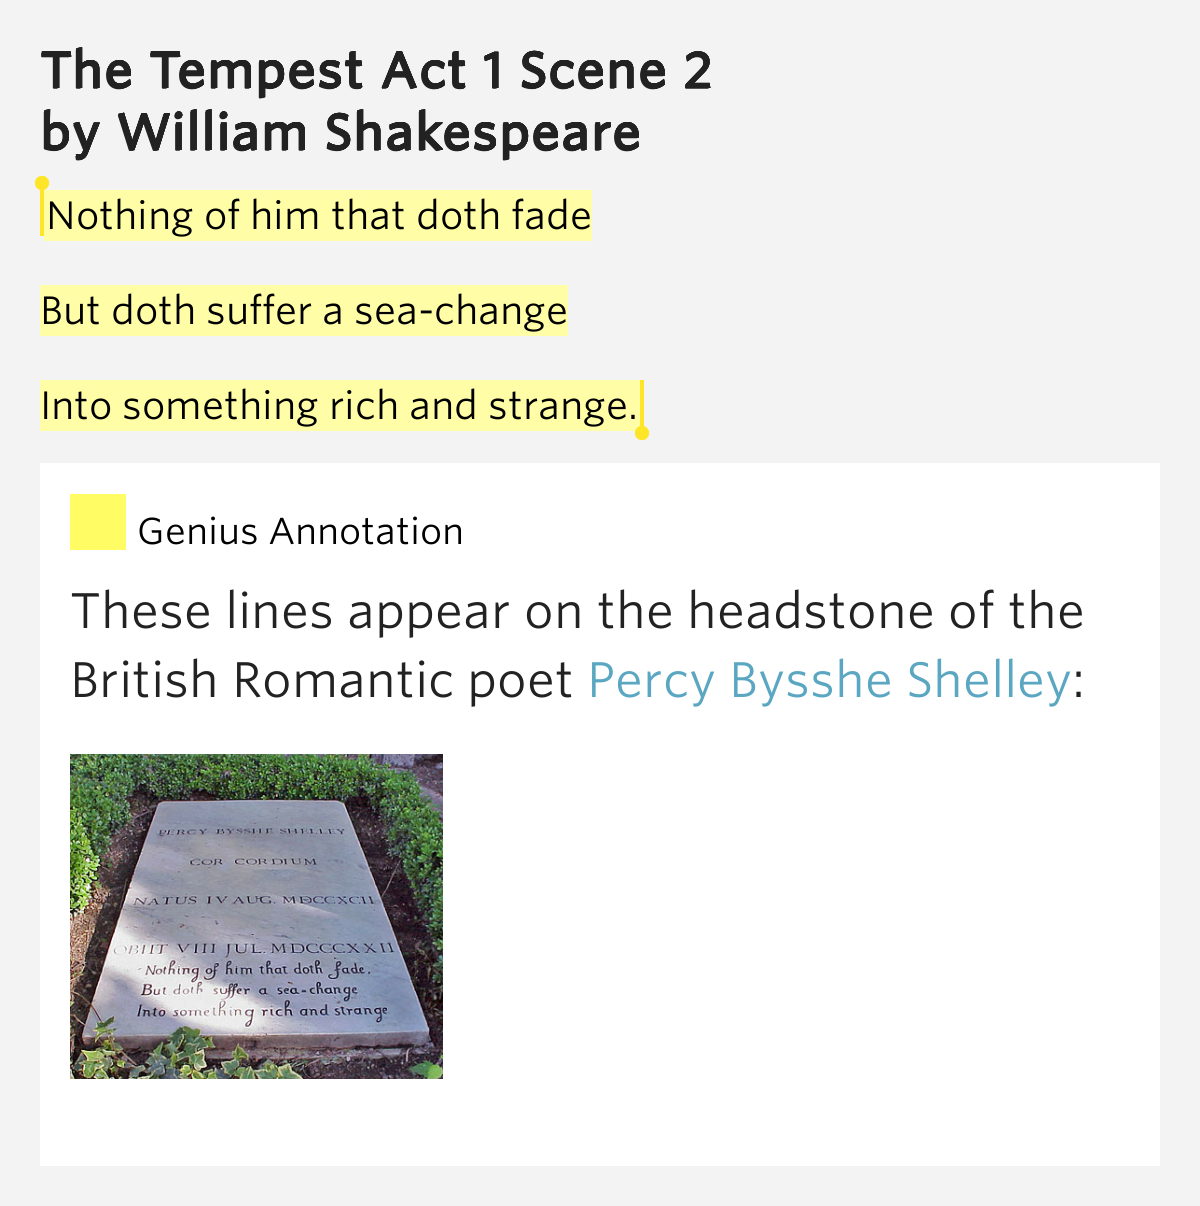 """the tempest act 1 It is clear that shakespeare was eager to set the scene and plant the audience in the world of the play with the opening word """"boatswain"""" this first word immediately transports the audience on to the deck of the ship, ready for adventure."""